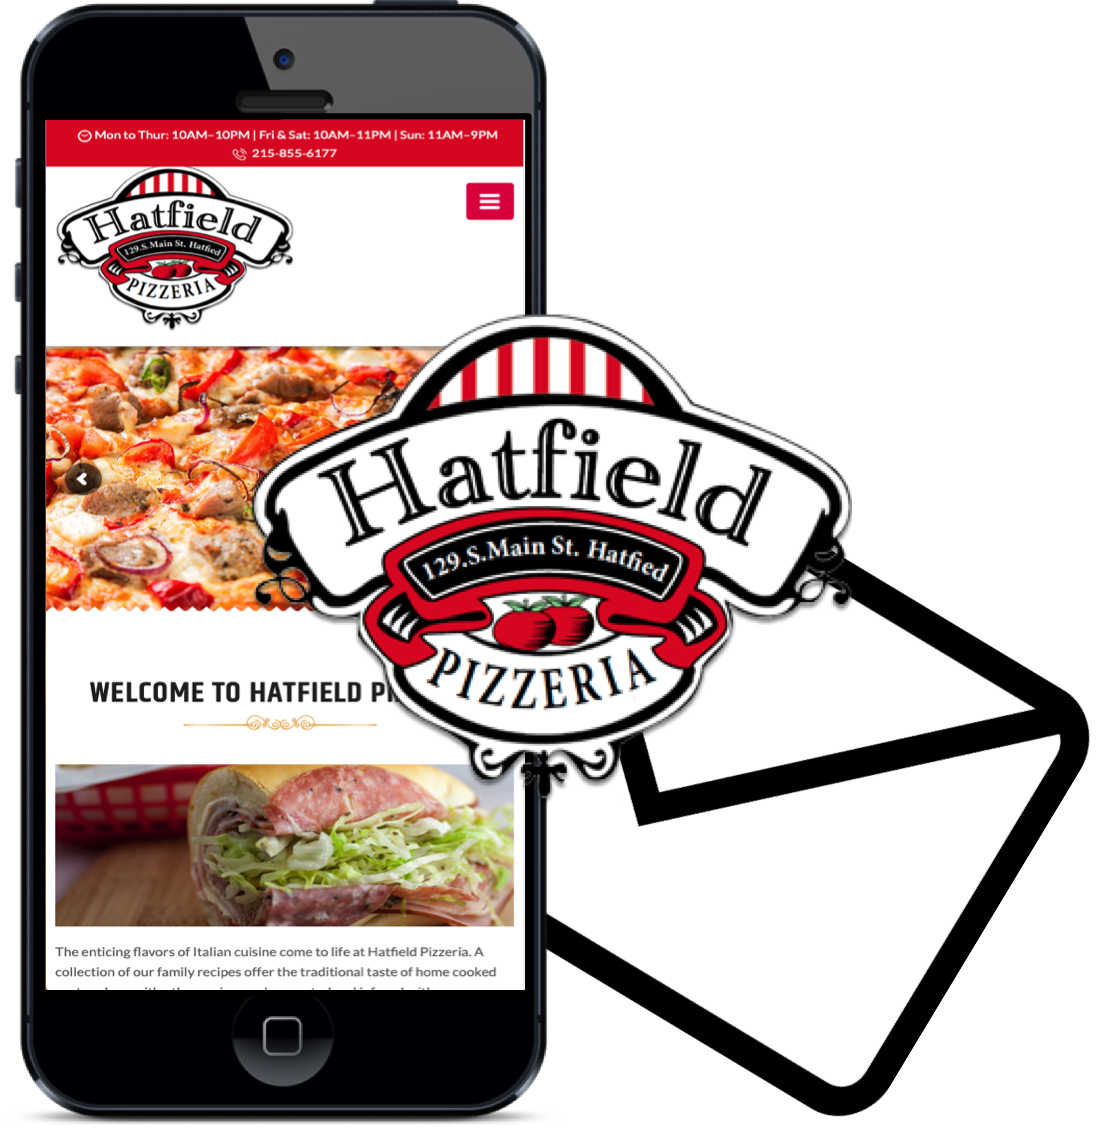 VIP Benefits - Hatfield Pizzeria and Italian Restaurant